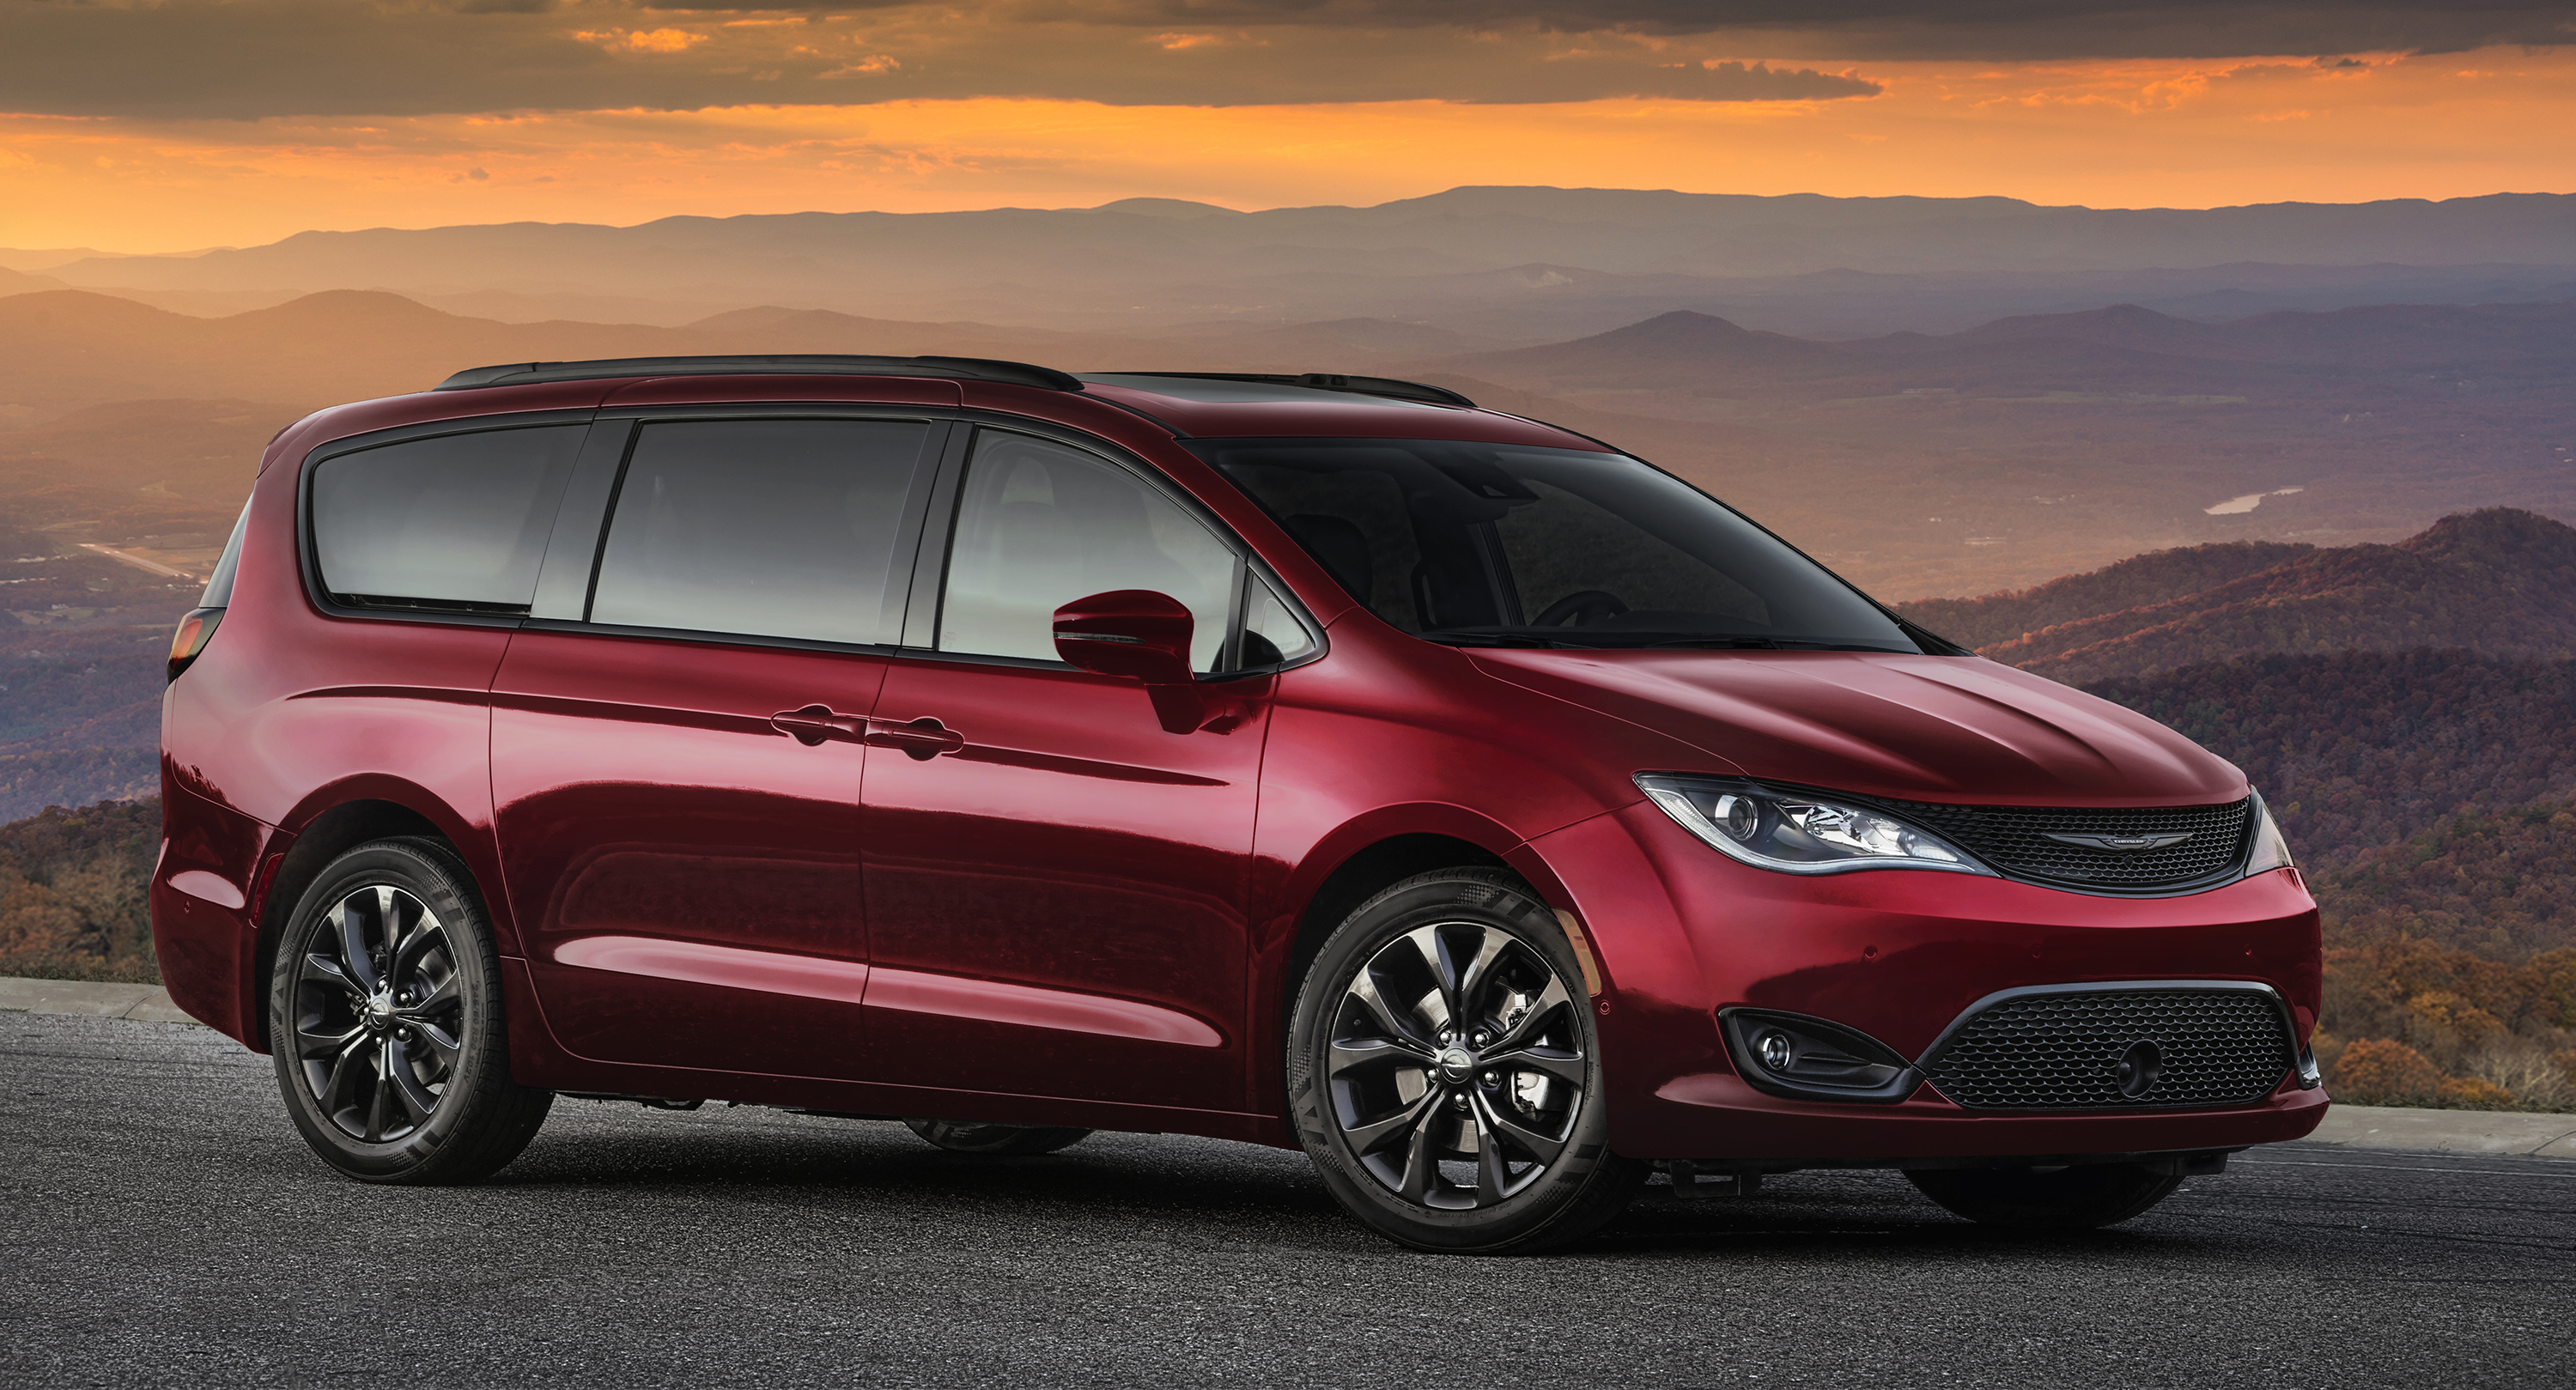 FCA US celebrates 35 years of minivan leadership with 2019 Chrysler Pacifica and Pacifica Hybrid 35th Anniversary Editions